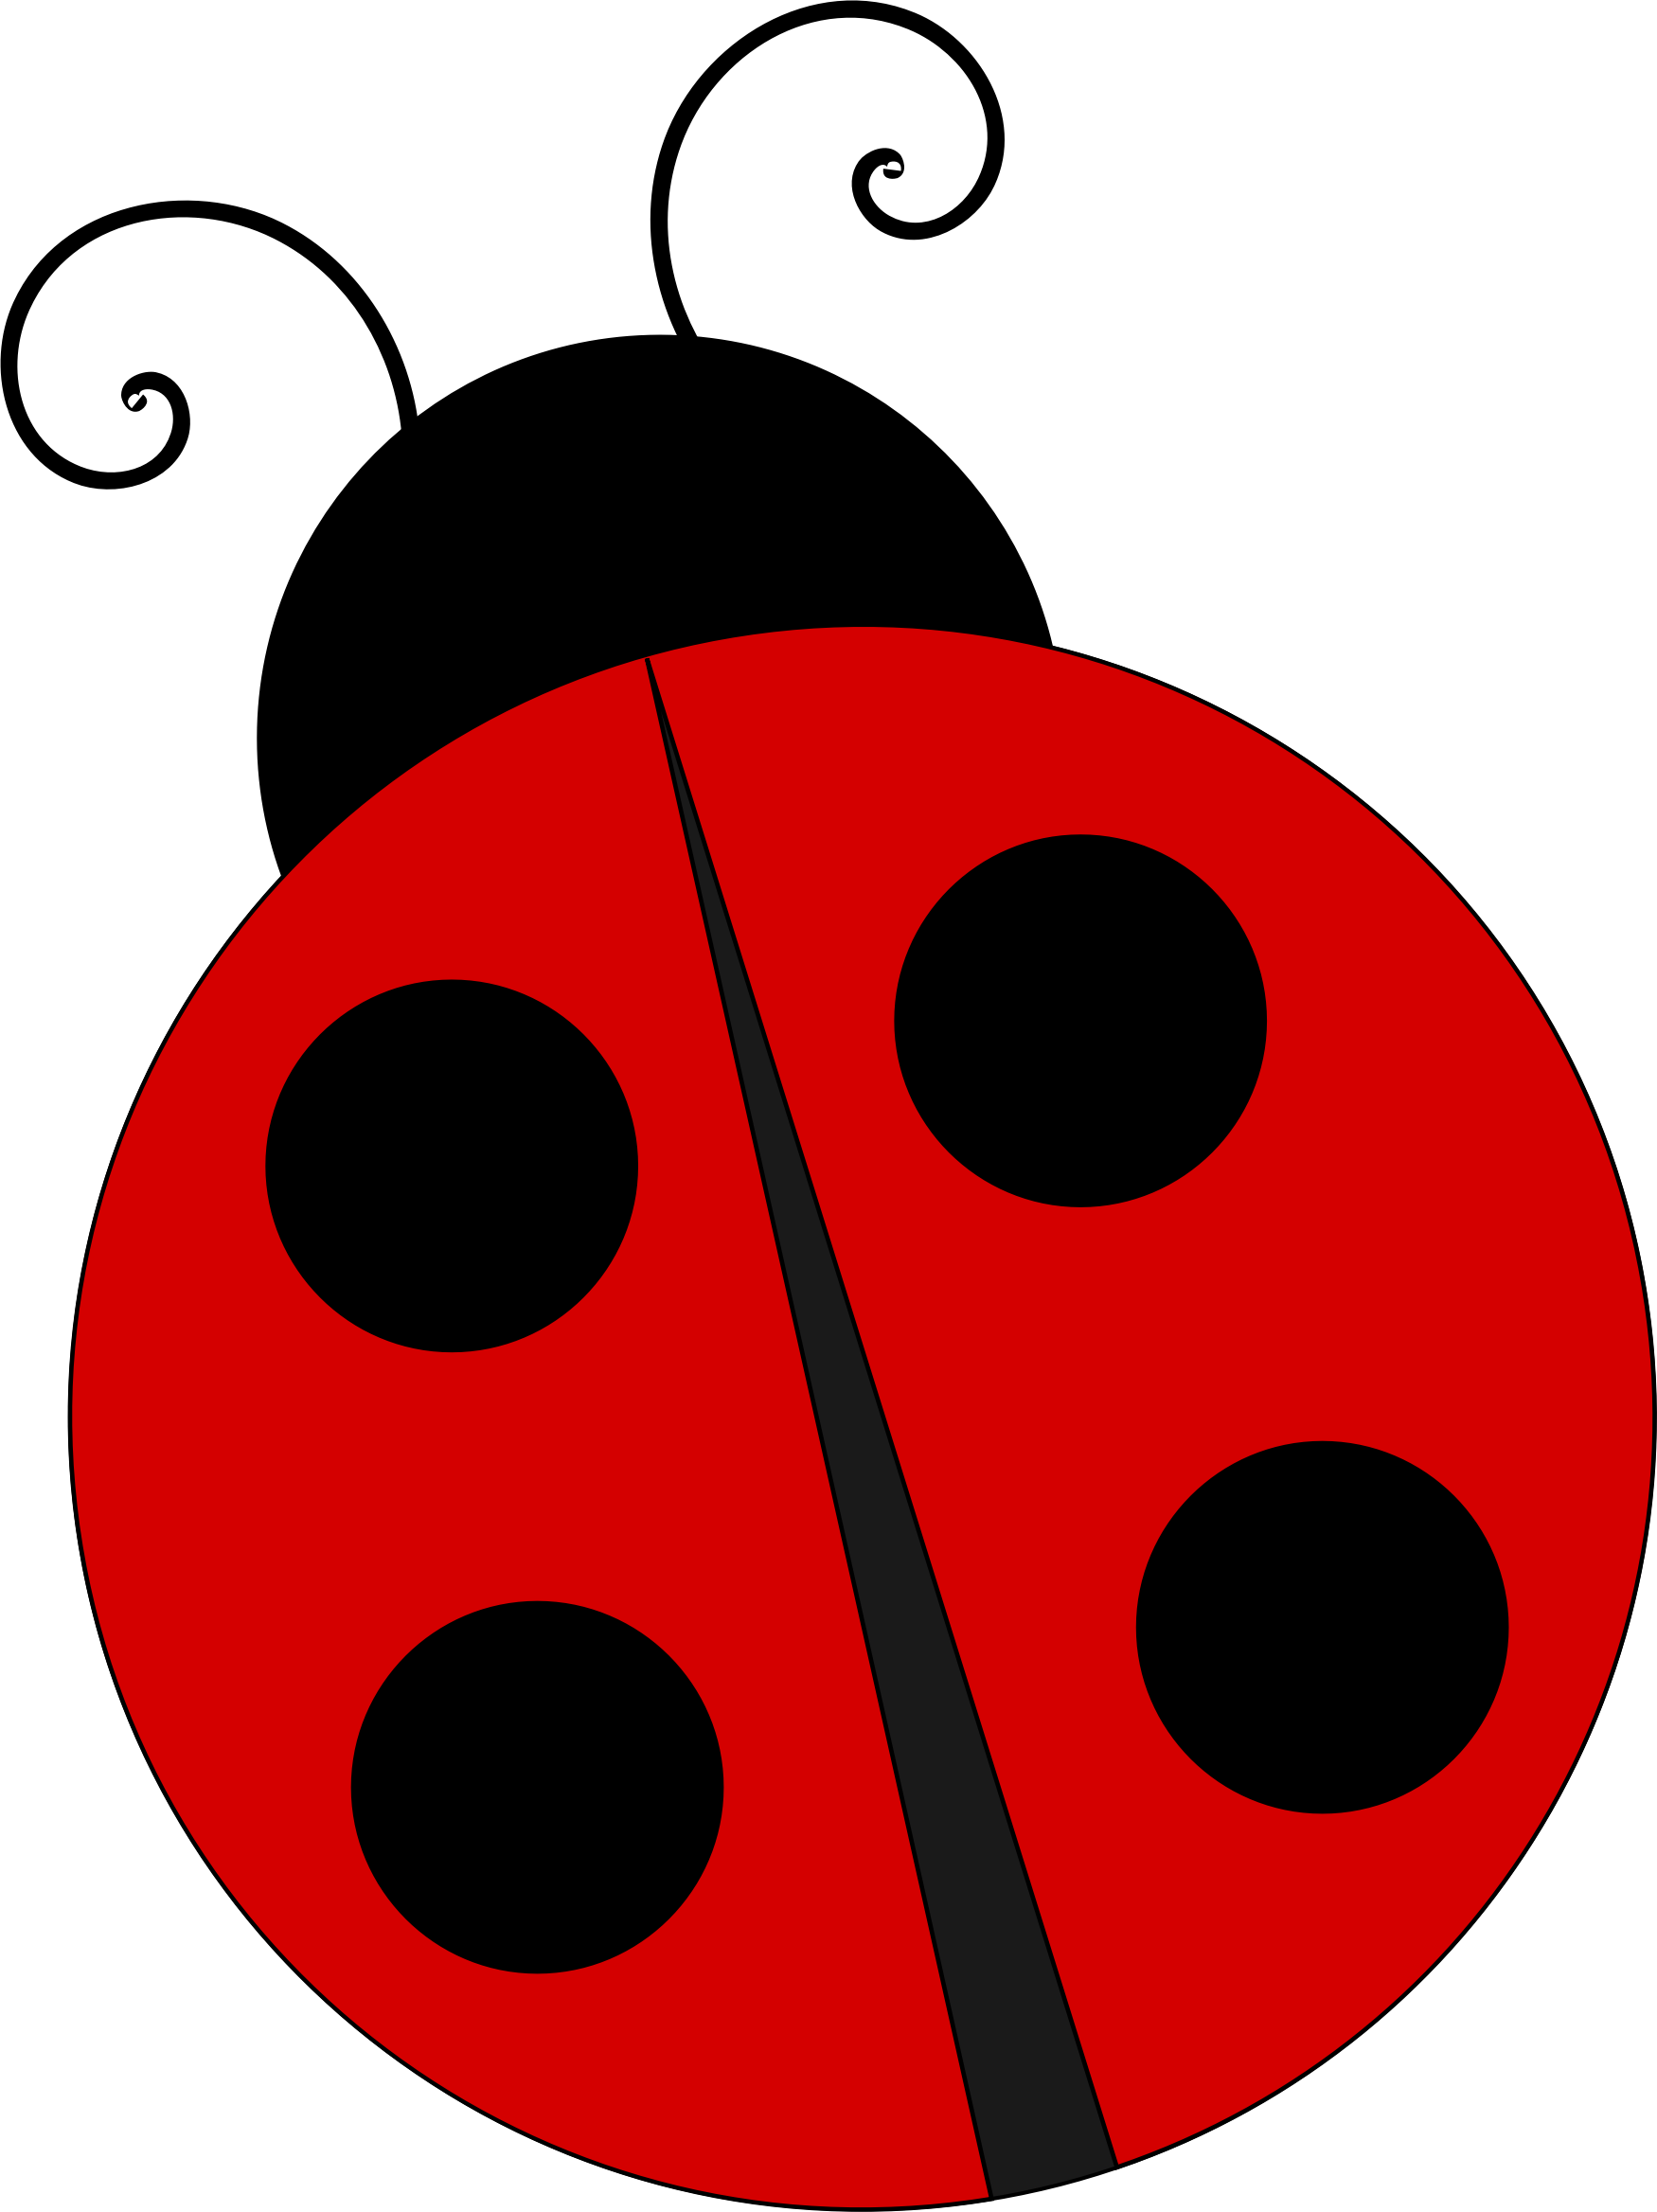 Ladybug clipart #14, Download drawings